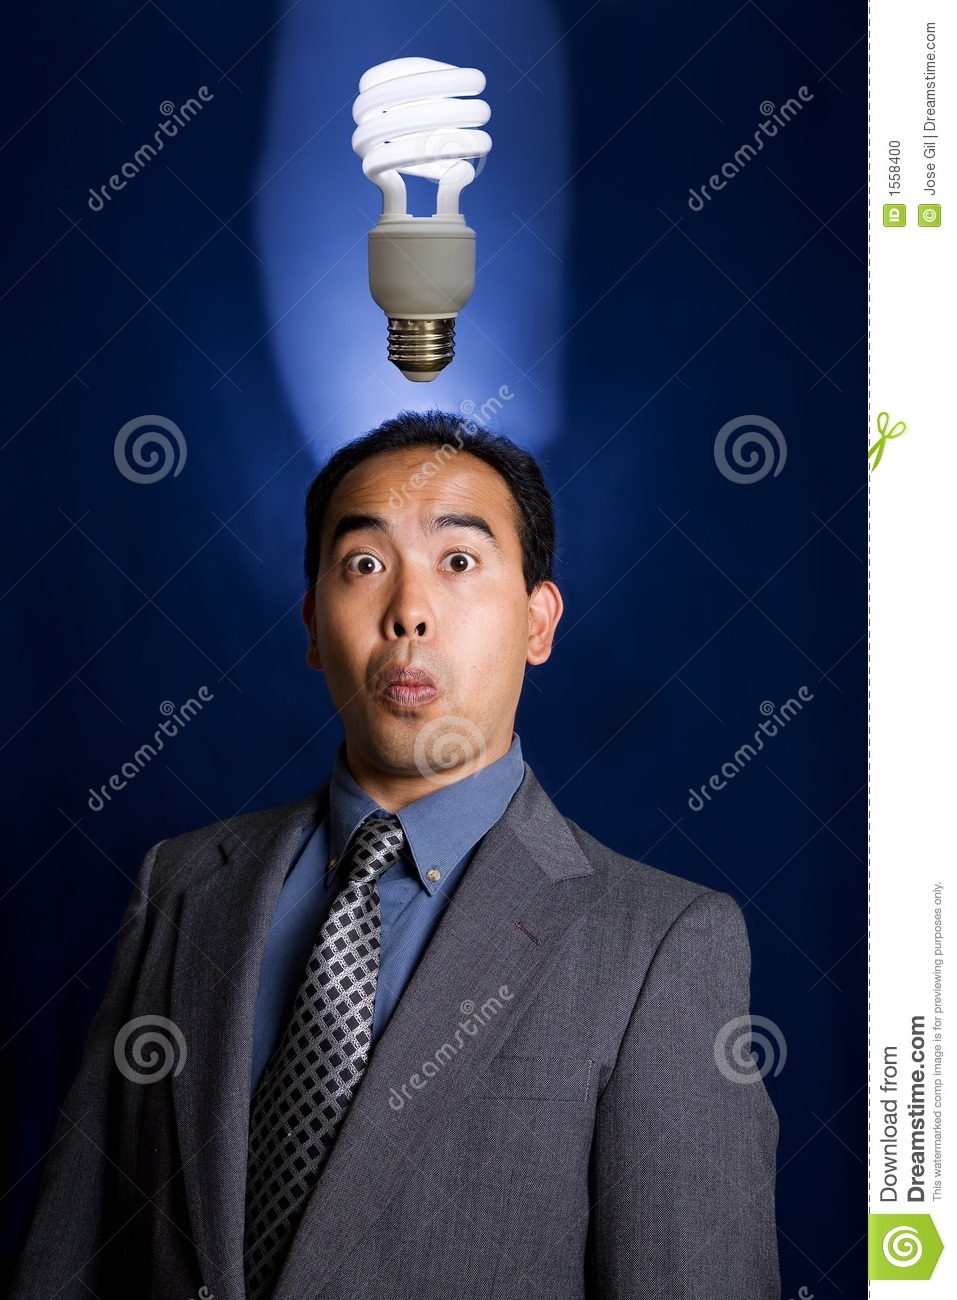 Business Man Of Asian Descent Having And Idea As Shown By A Ecofriendly Compact Fluorescent Light Bulb Above His Head